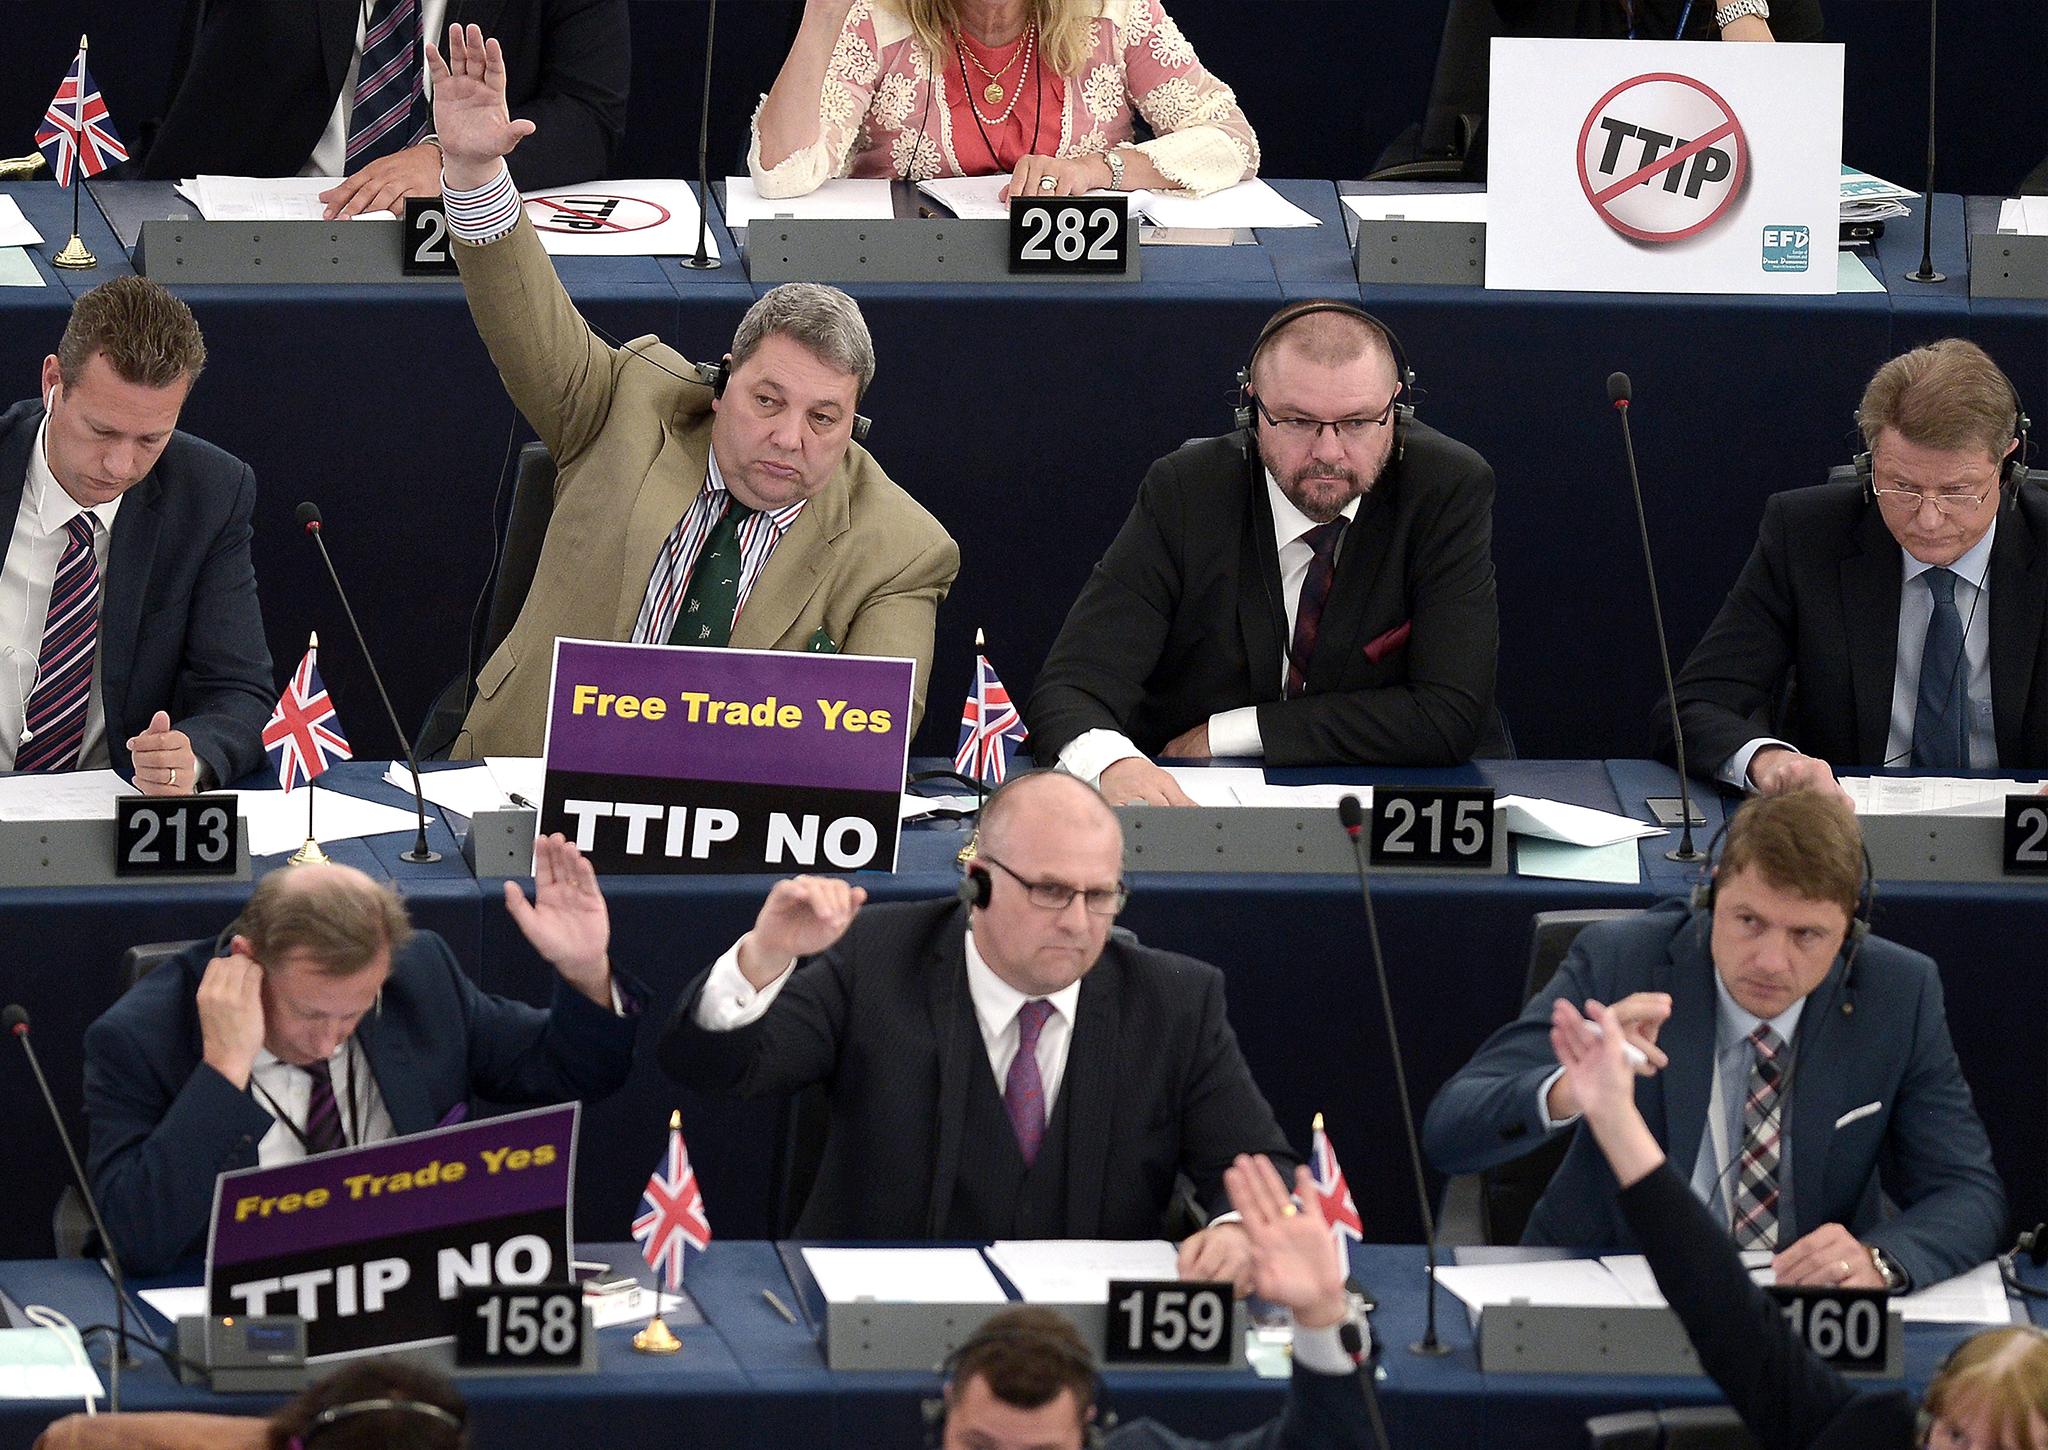 TTIP: Here's why MEPs have been protesting it, and why you should too